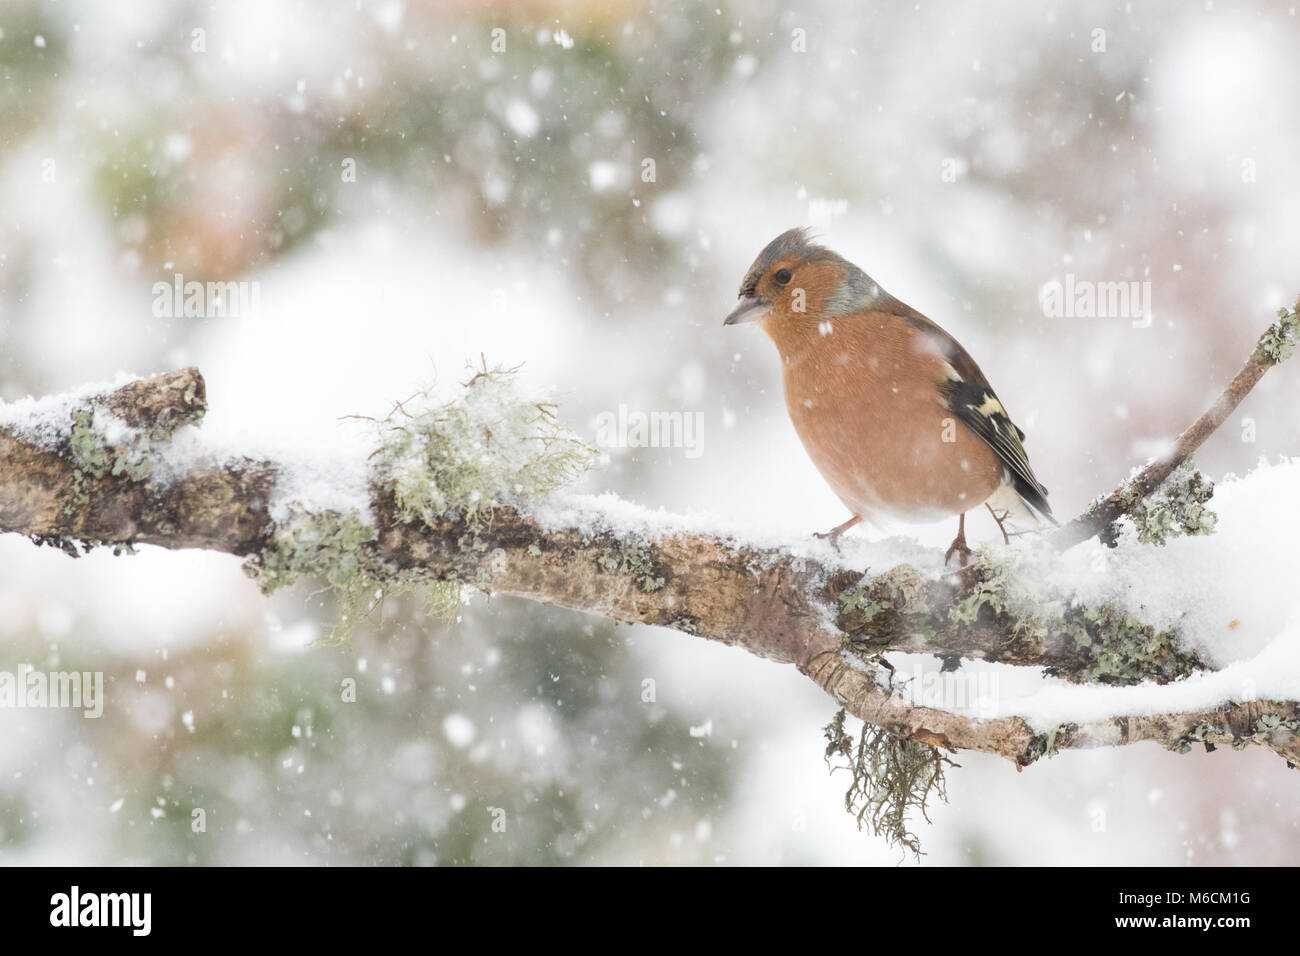 Chaffinch (male) in winter - Stock Image